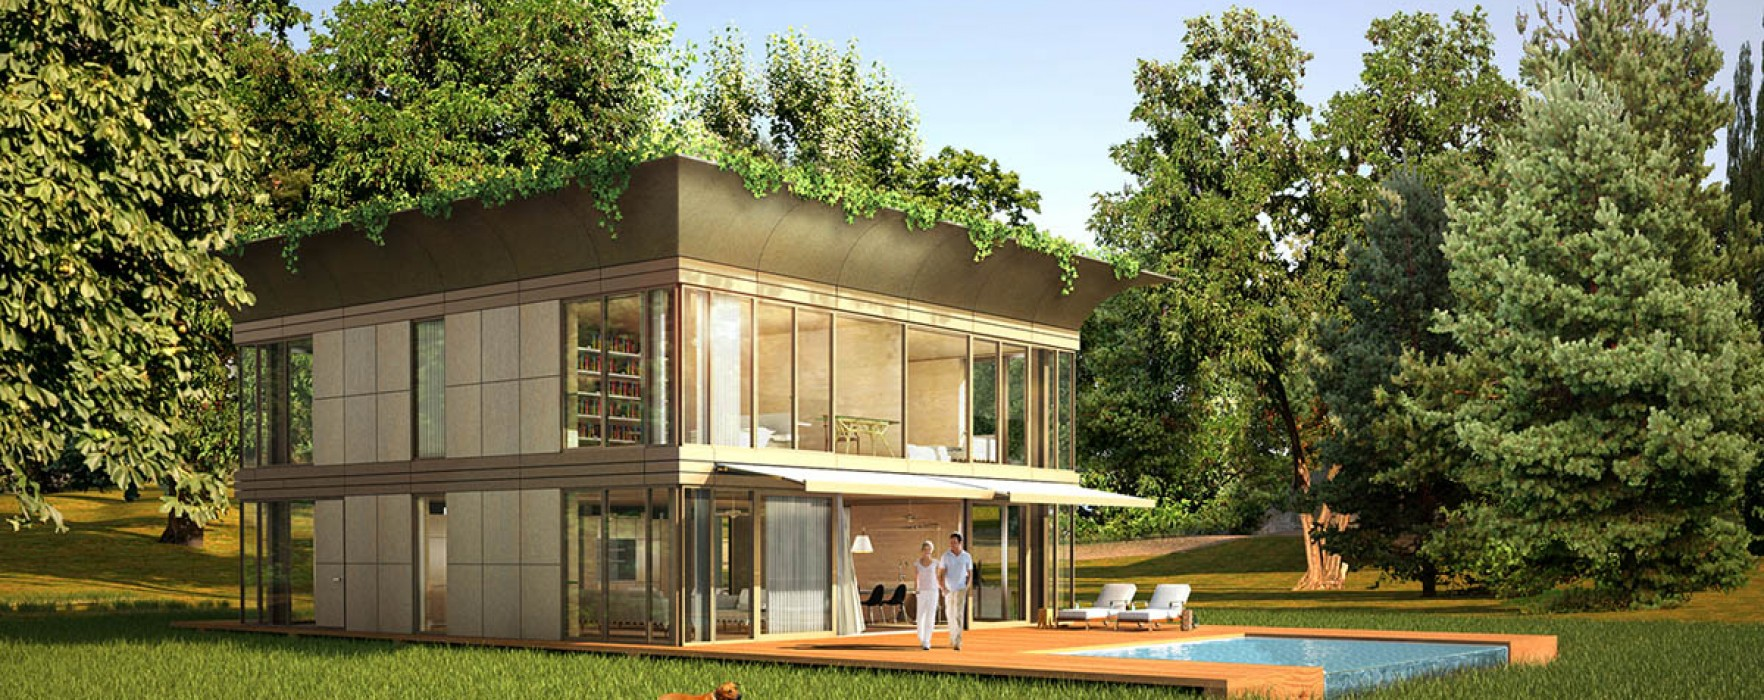 Piano interrato o platea per le case ecologiche for Piani di cottage modulari